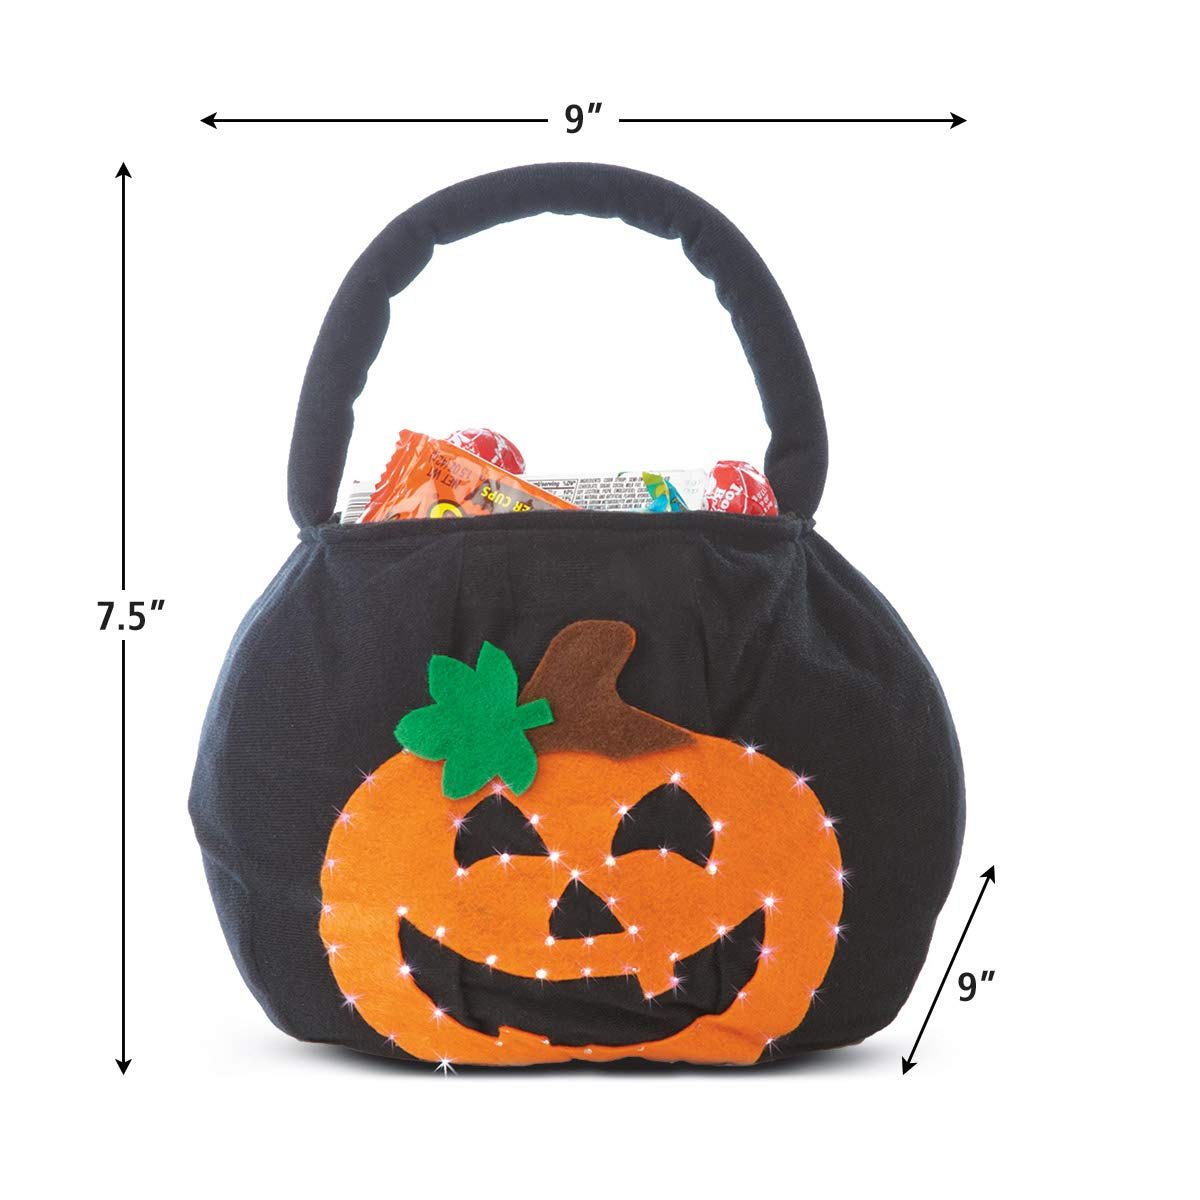 Enjoyable Lillian Vernon Blinking Pumpkin Personalized Halloween Treat Bag Light Up Trick Or Treat Tote Candy Basket For Kids 100 Polyester 9 X 9 X Caraccident5 Cool Chair Designs And Ideas Caraccident5Info